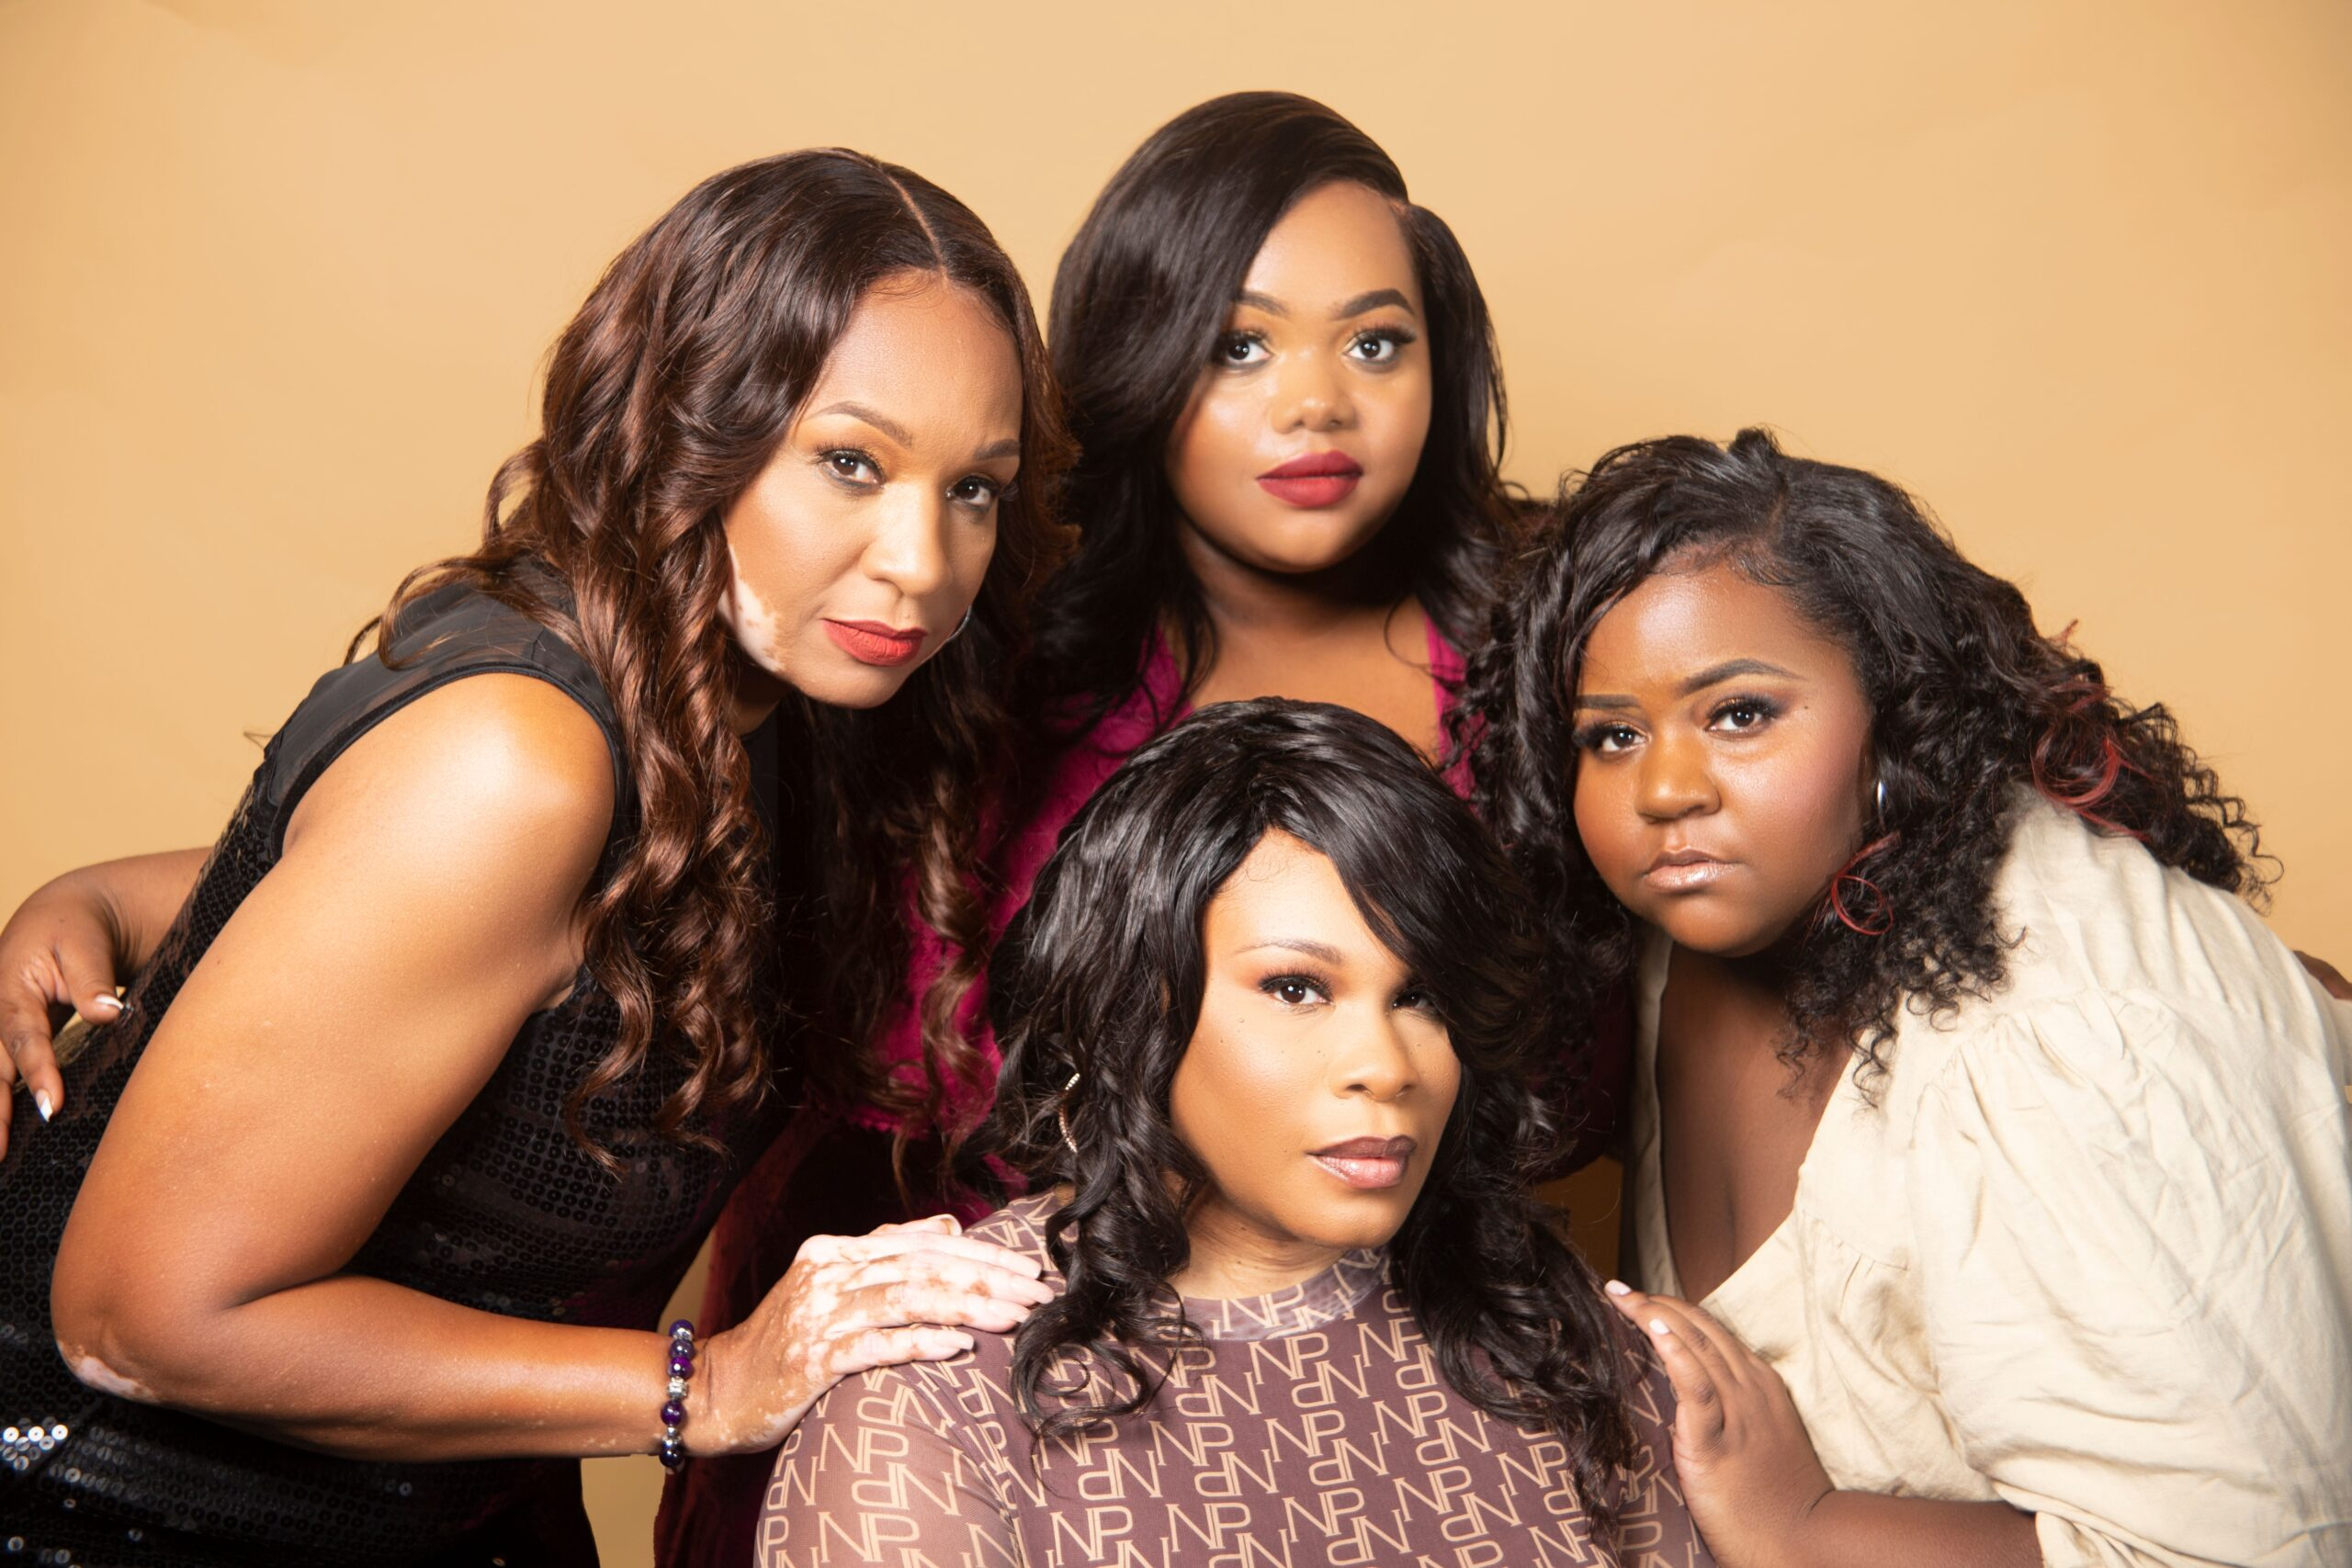 Houston- Based Luxury Hair Company Treated 5 Deserving Women to a Complimentary Makeover!